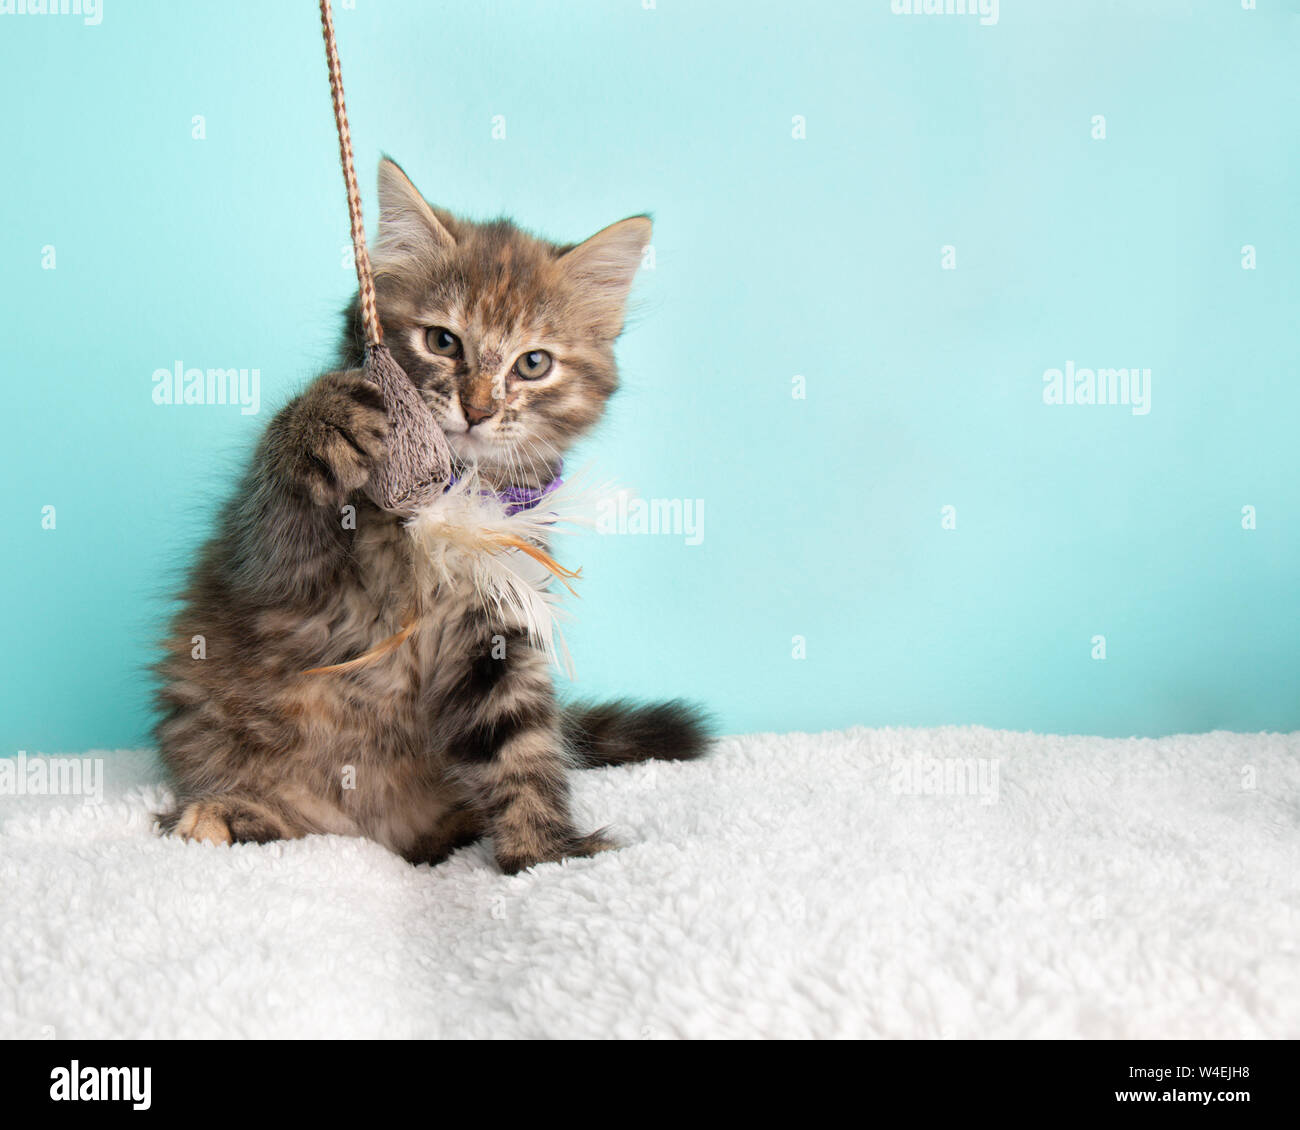 Cute Fluffy Young Tabby Kitten Rescue Cat Wearing Purple and White Poka Dotted Bow Tie Sitting Pawing and Playing with String and Mouse Toy on Blue Ba Stock Photo